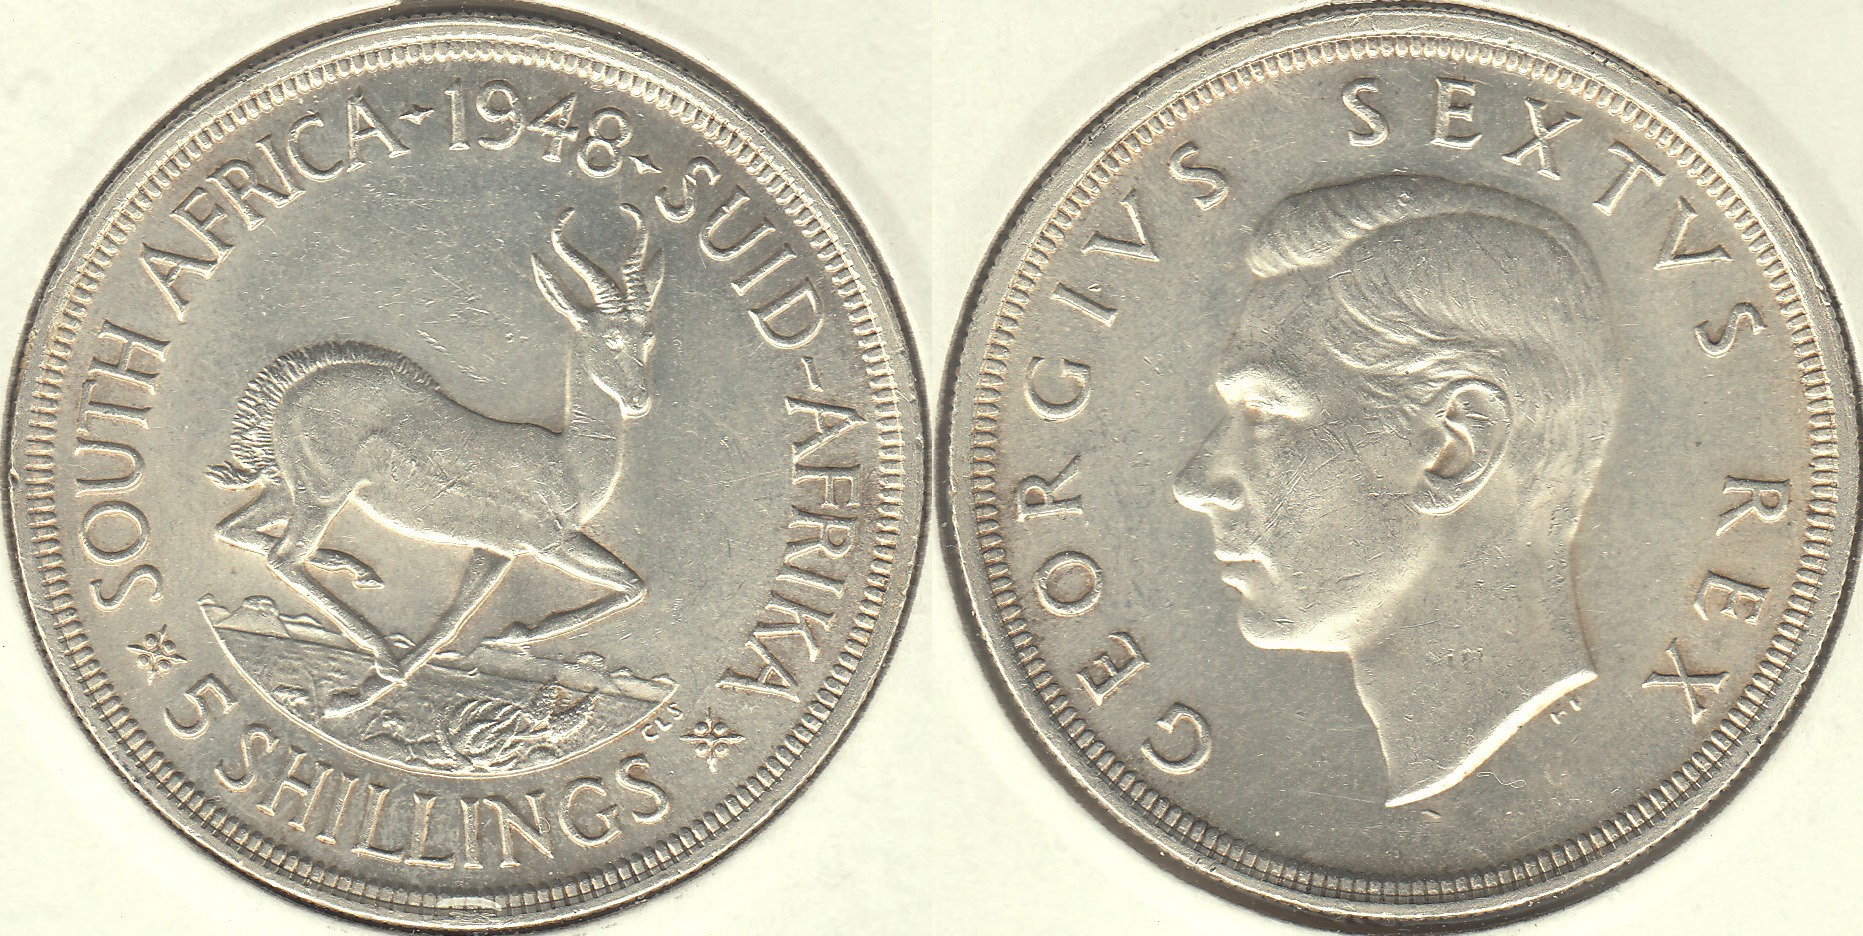 SUDAFRICA - SOUTH AFRICA. 5 SHILLINGS DE 1948. PLATA 0.800. (3)